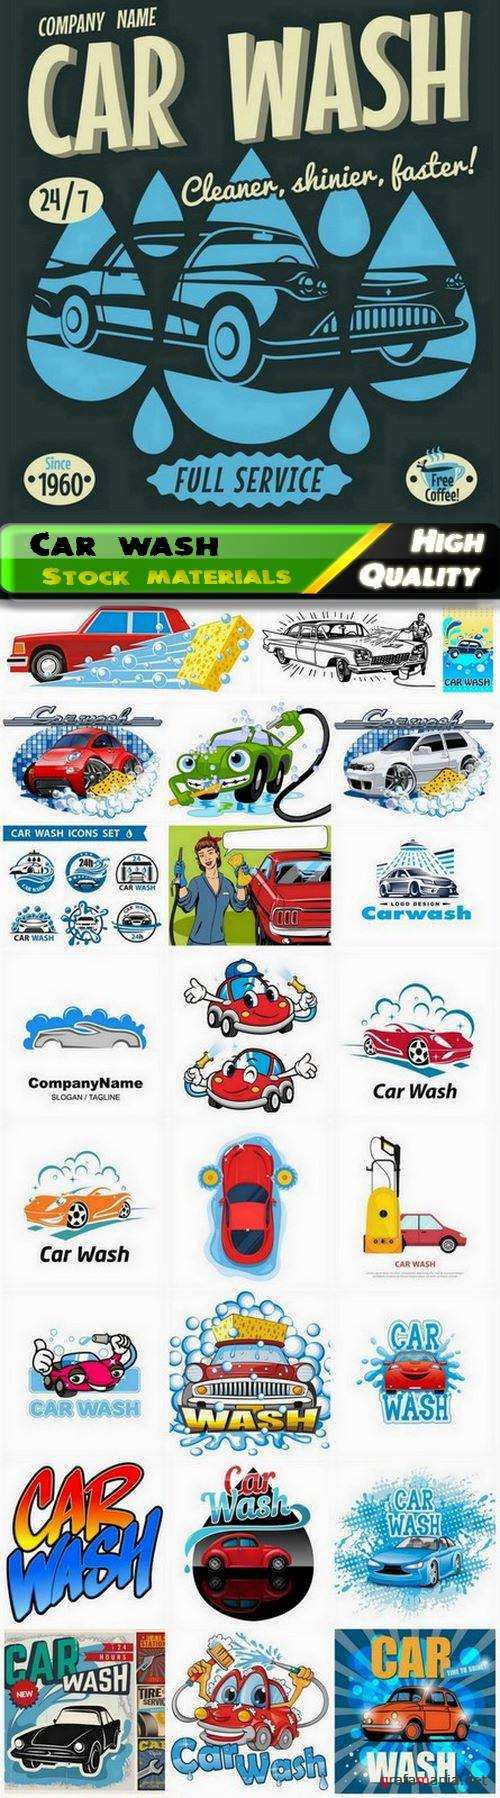 Car wash service and garage automobile repair - 25 Eps